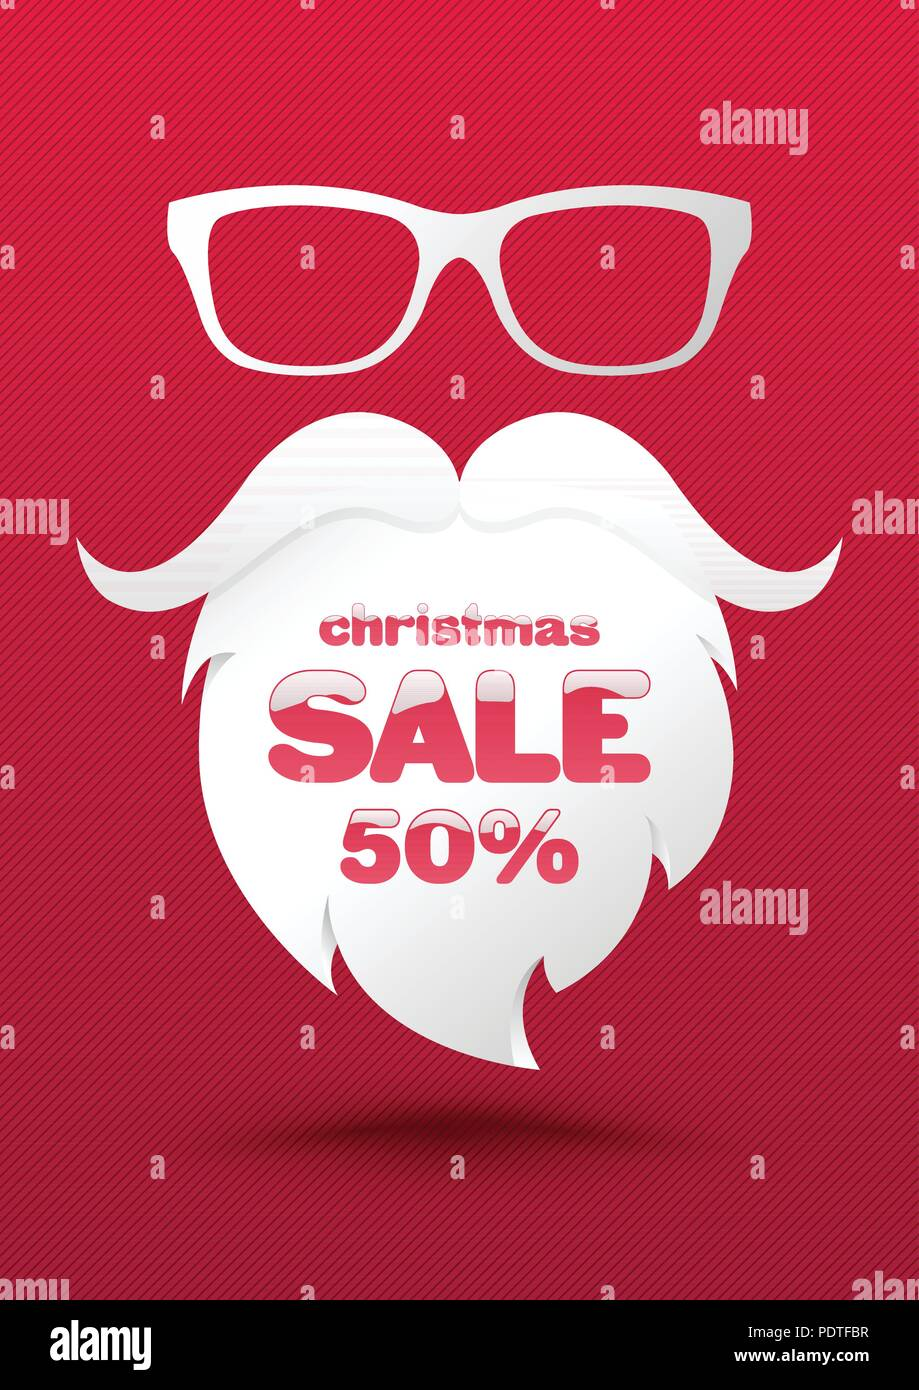 christmas sale poster template use for holidays promotion